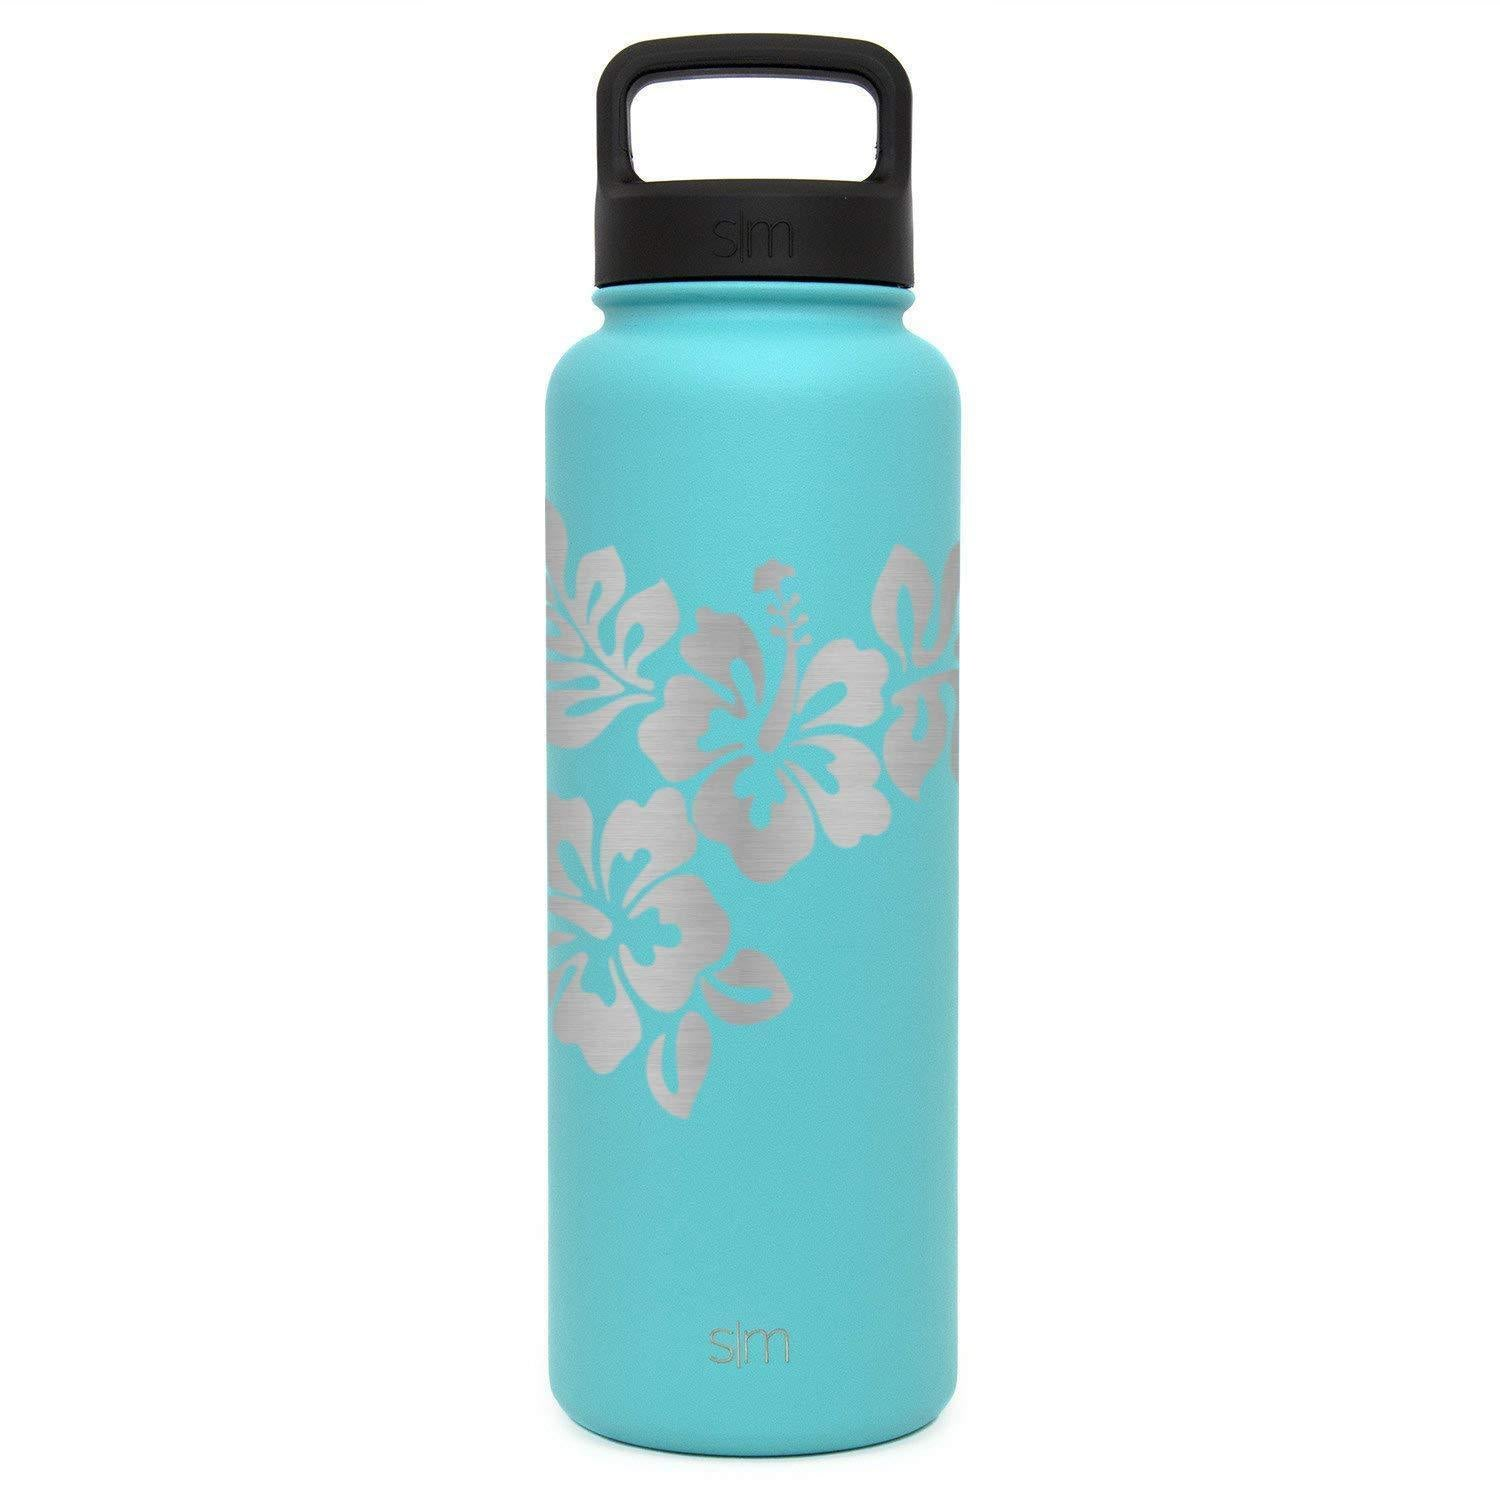 Premium Stainless Steel Water Bottle, Hibiscus Design, Extra Lid, 40oz (Caribbean Teal)